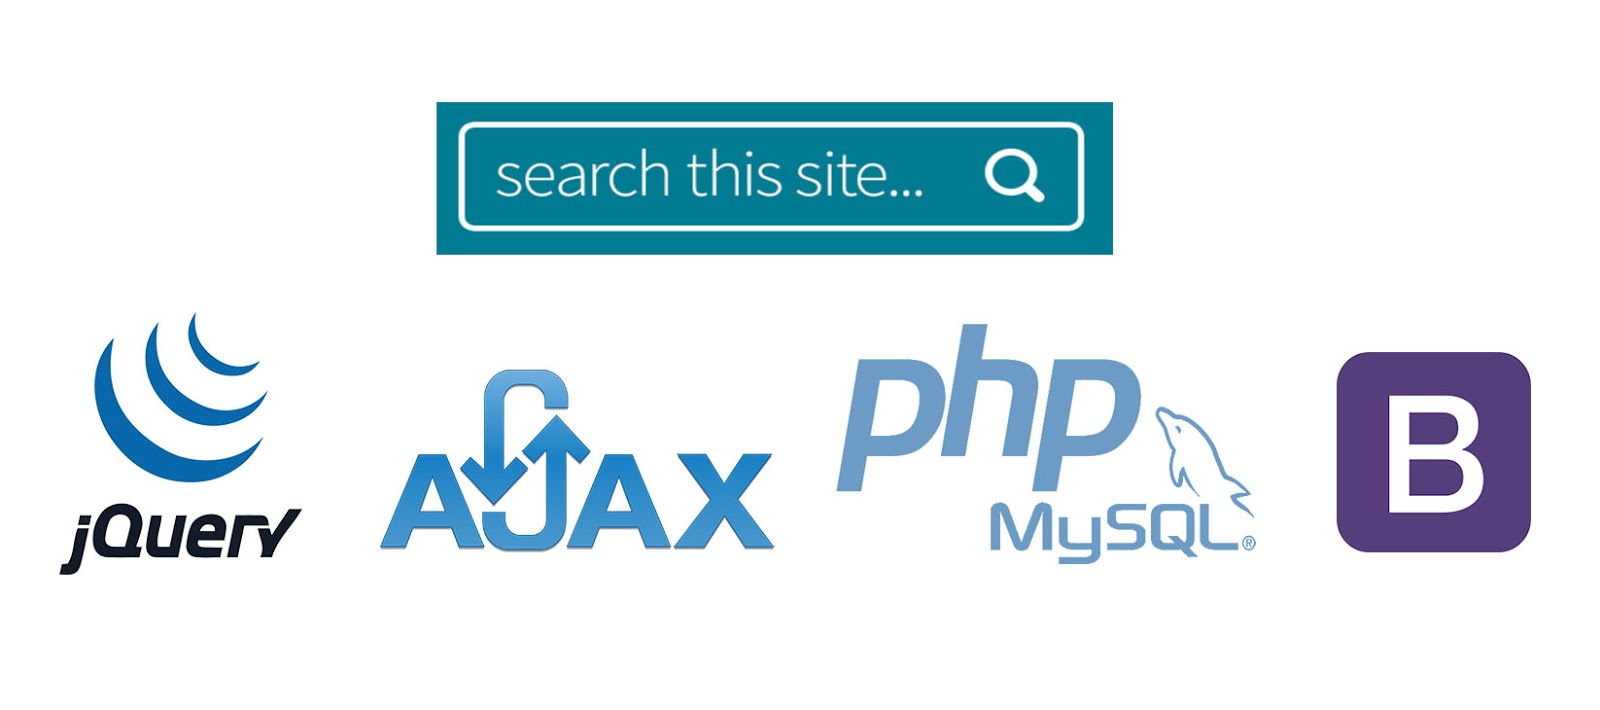 Auto complete search with Ajax, jQuery, PHP and MYSQL